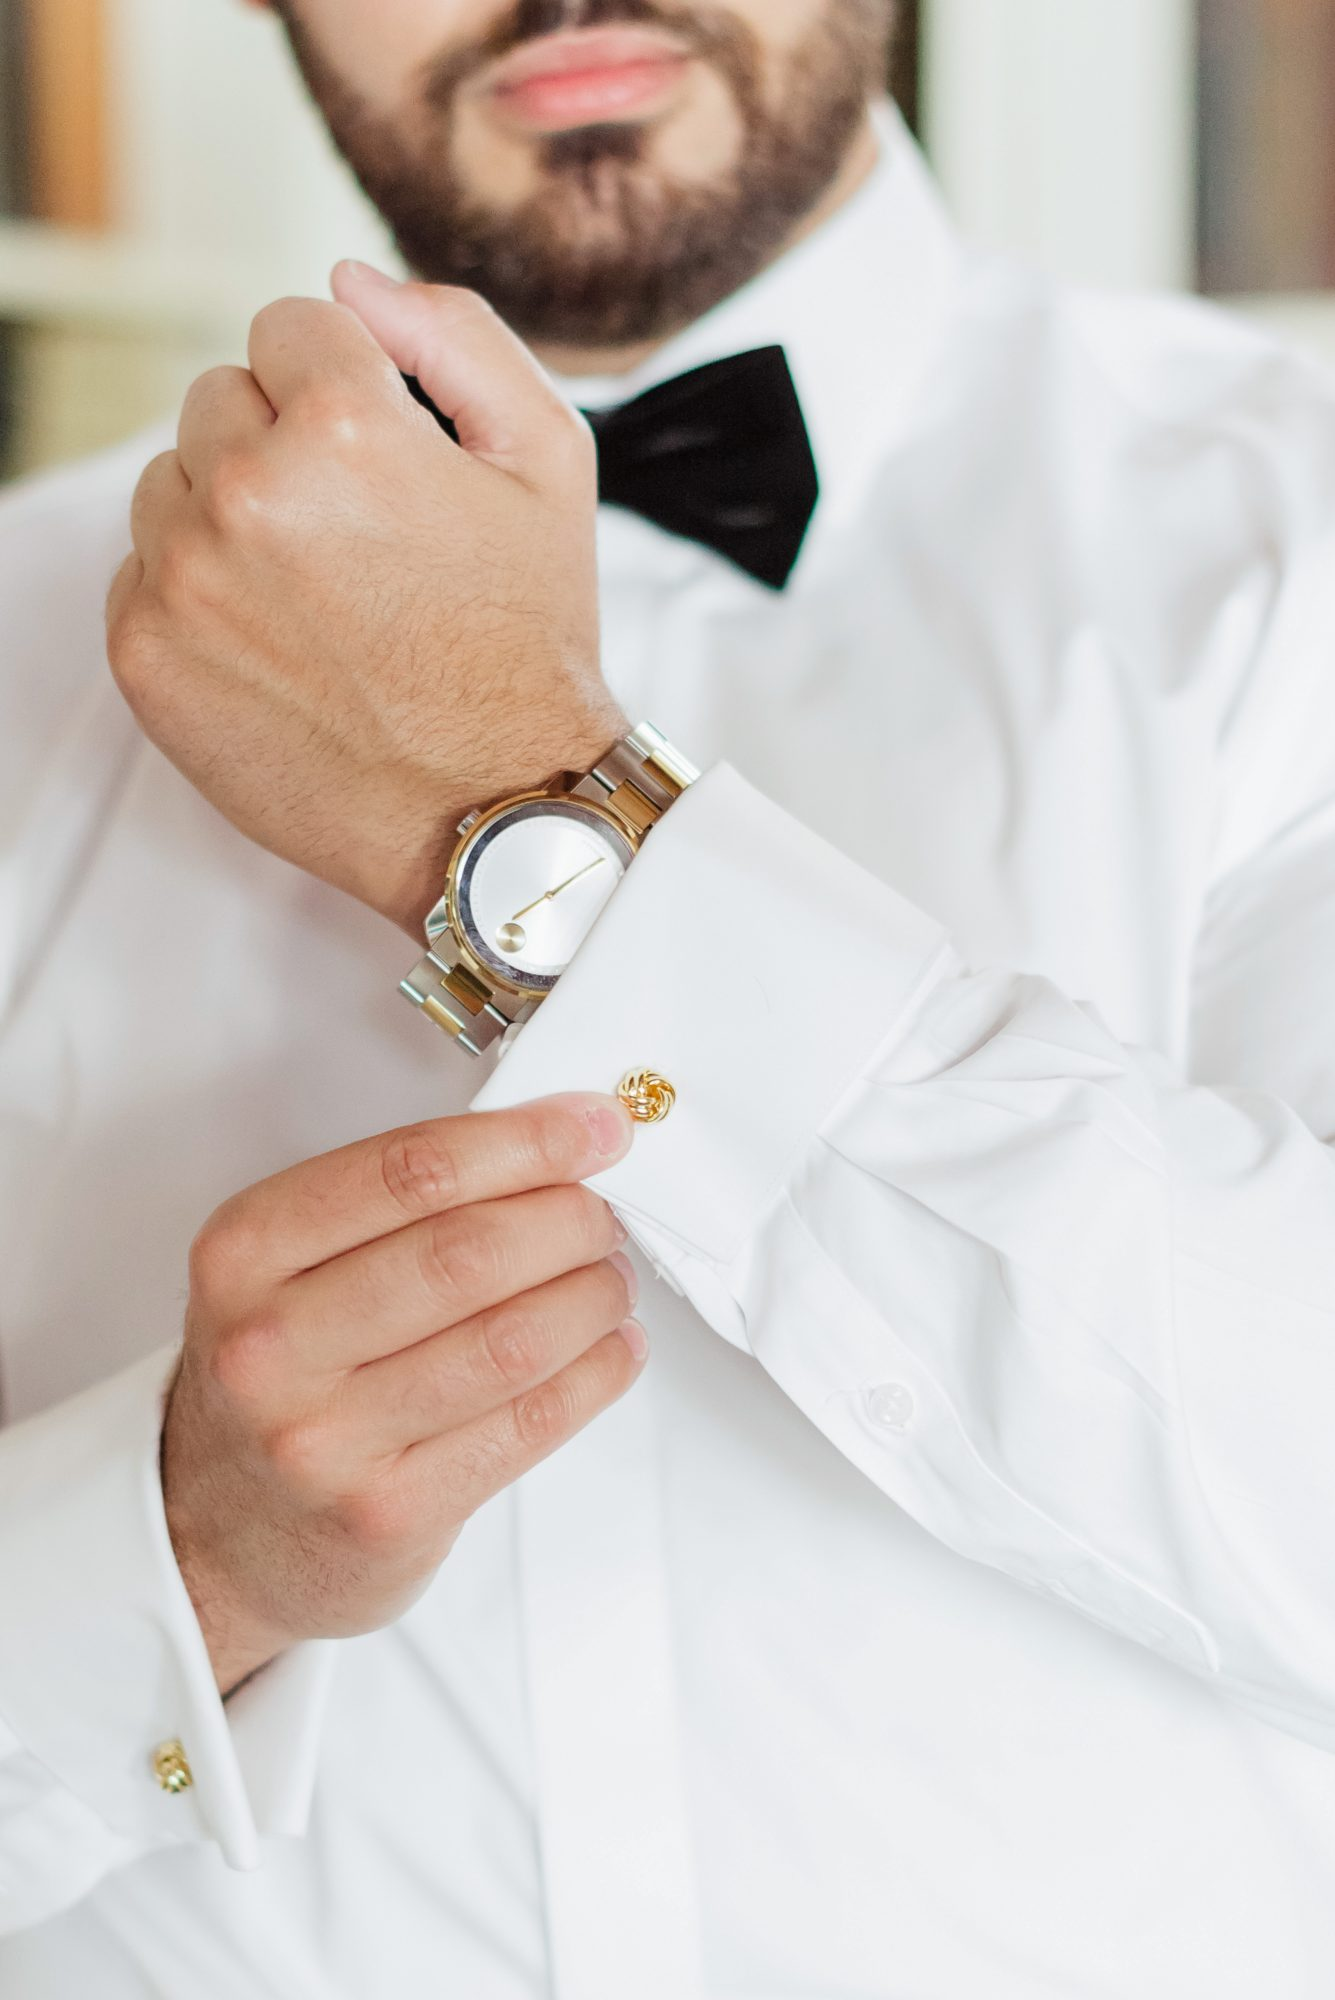 cool groom accessories watch matching gold cuff link